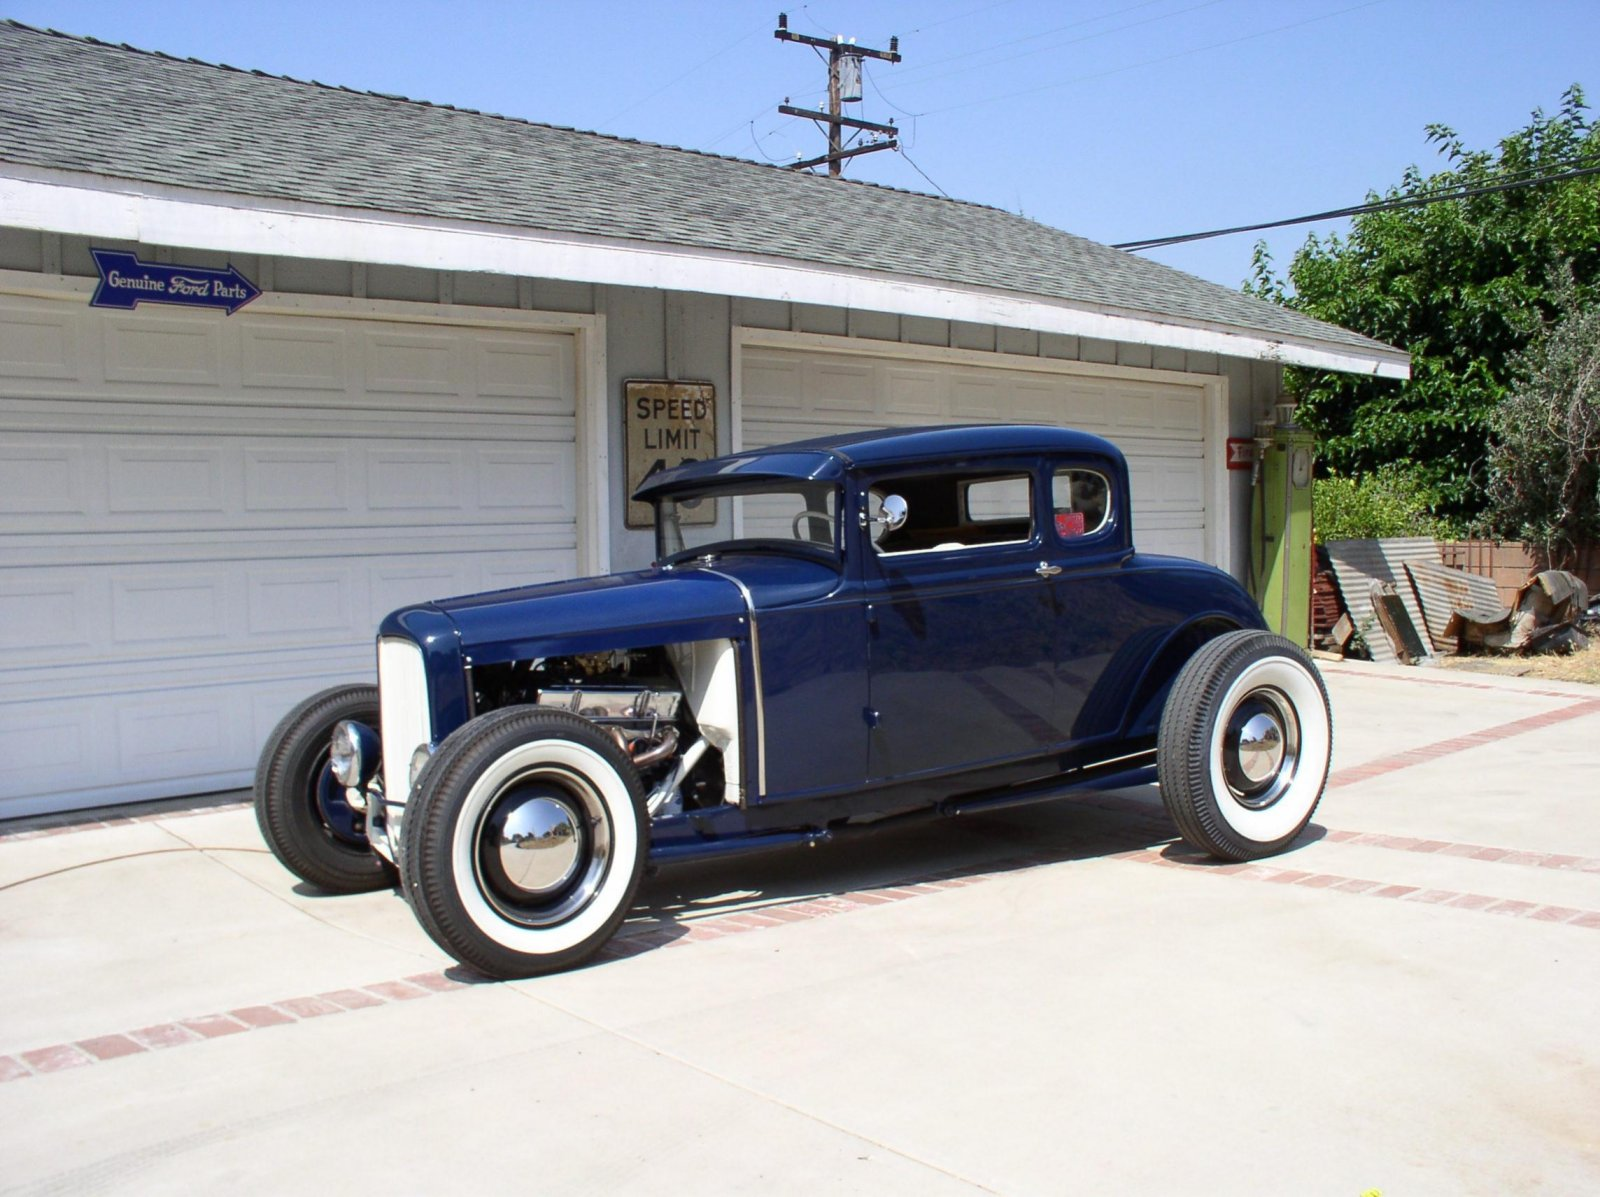 Hot Rods - Question about front suspension on this A coupe